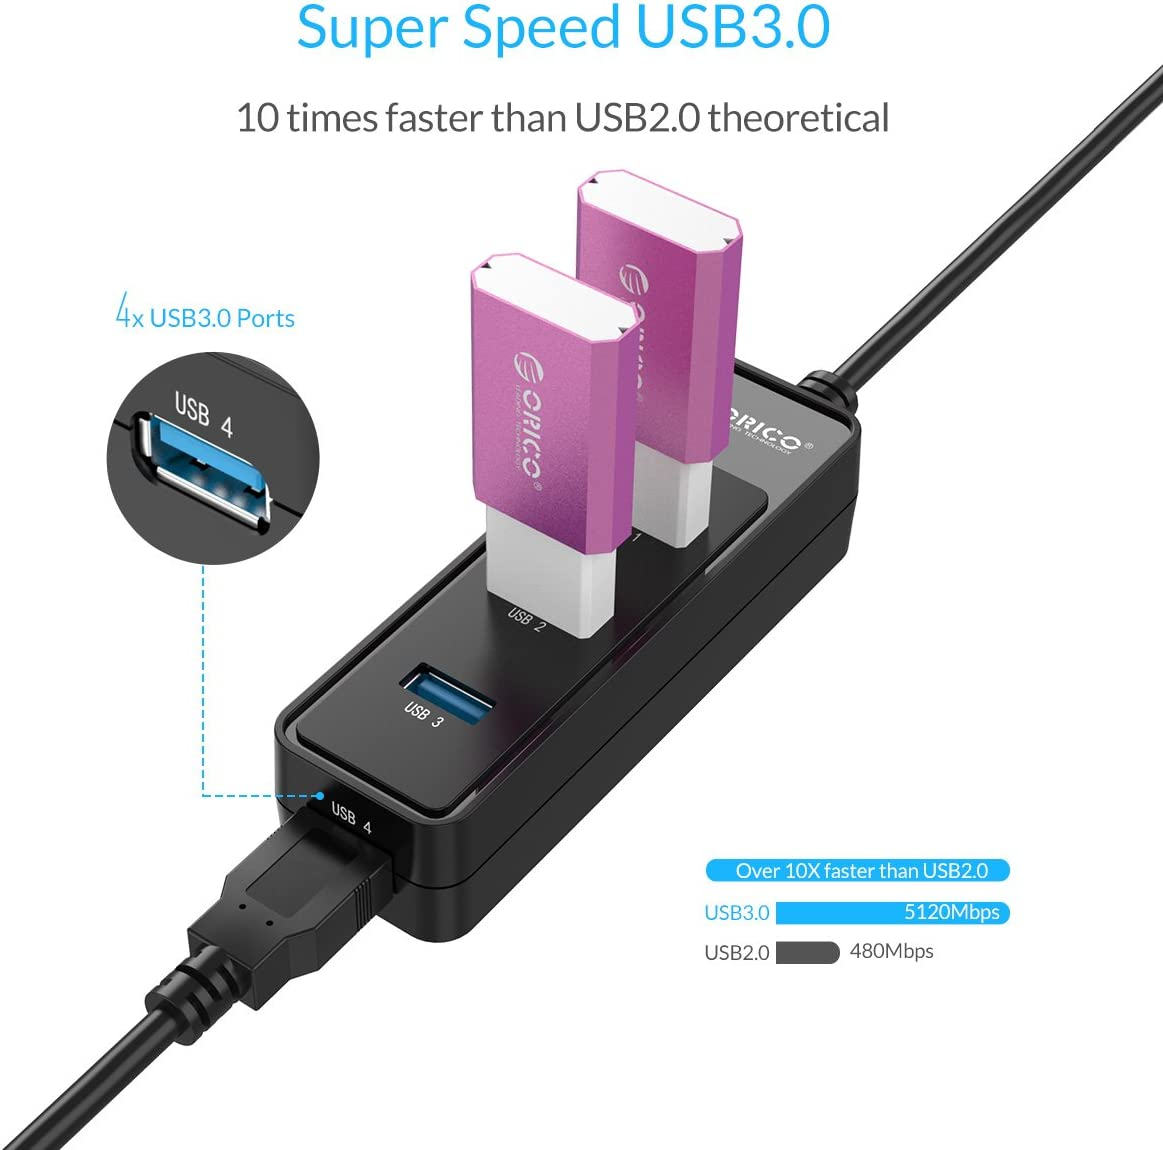 USB Adapter Hub, ORICO 4-Port USB 3.0 Hub, Ultra Slim Data Hub with 11.81inch Extension Cable - Fit iMac, Surface Pro, XPS, Notebook PC, USB Flash Drives, Mobile HDD, and More - Black